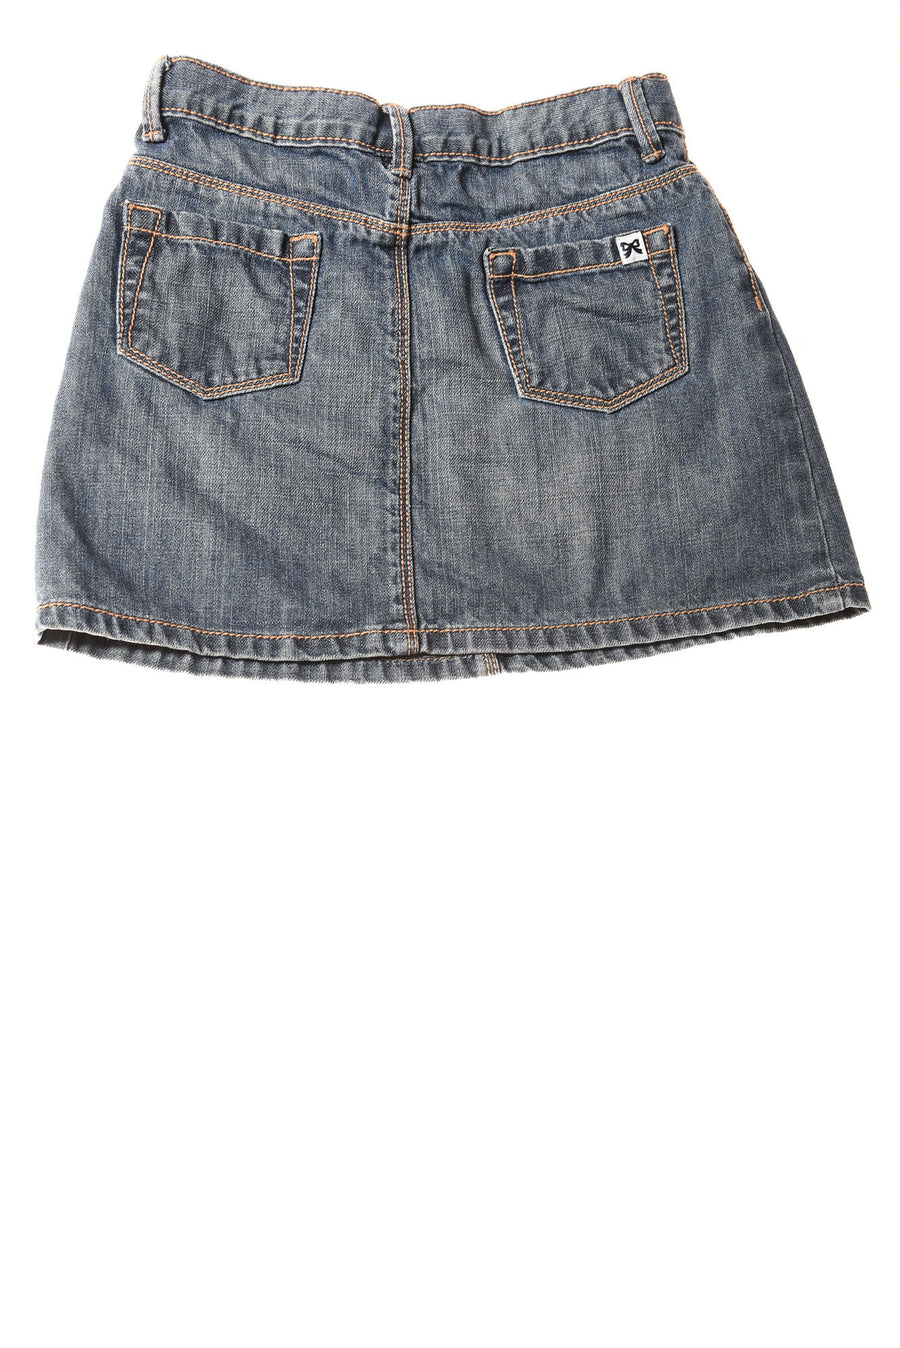 GIrl's Skirt By Gymboree